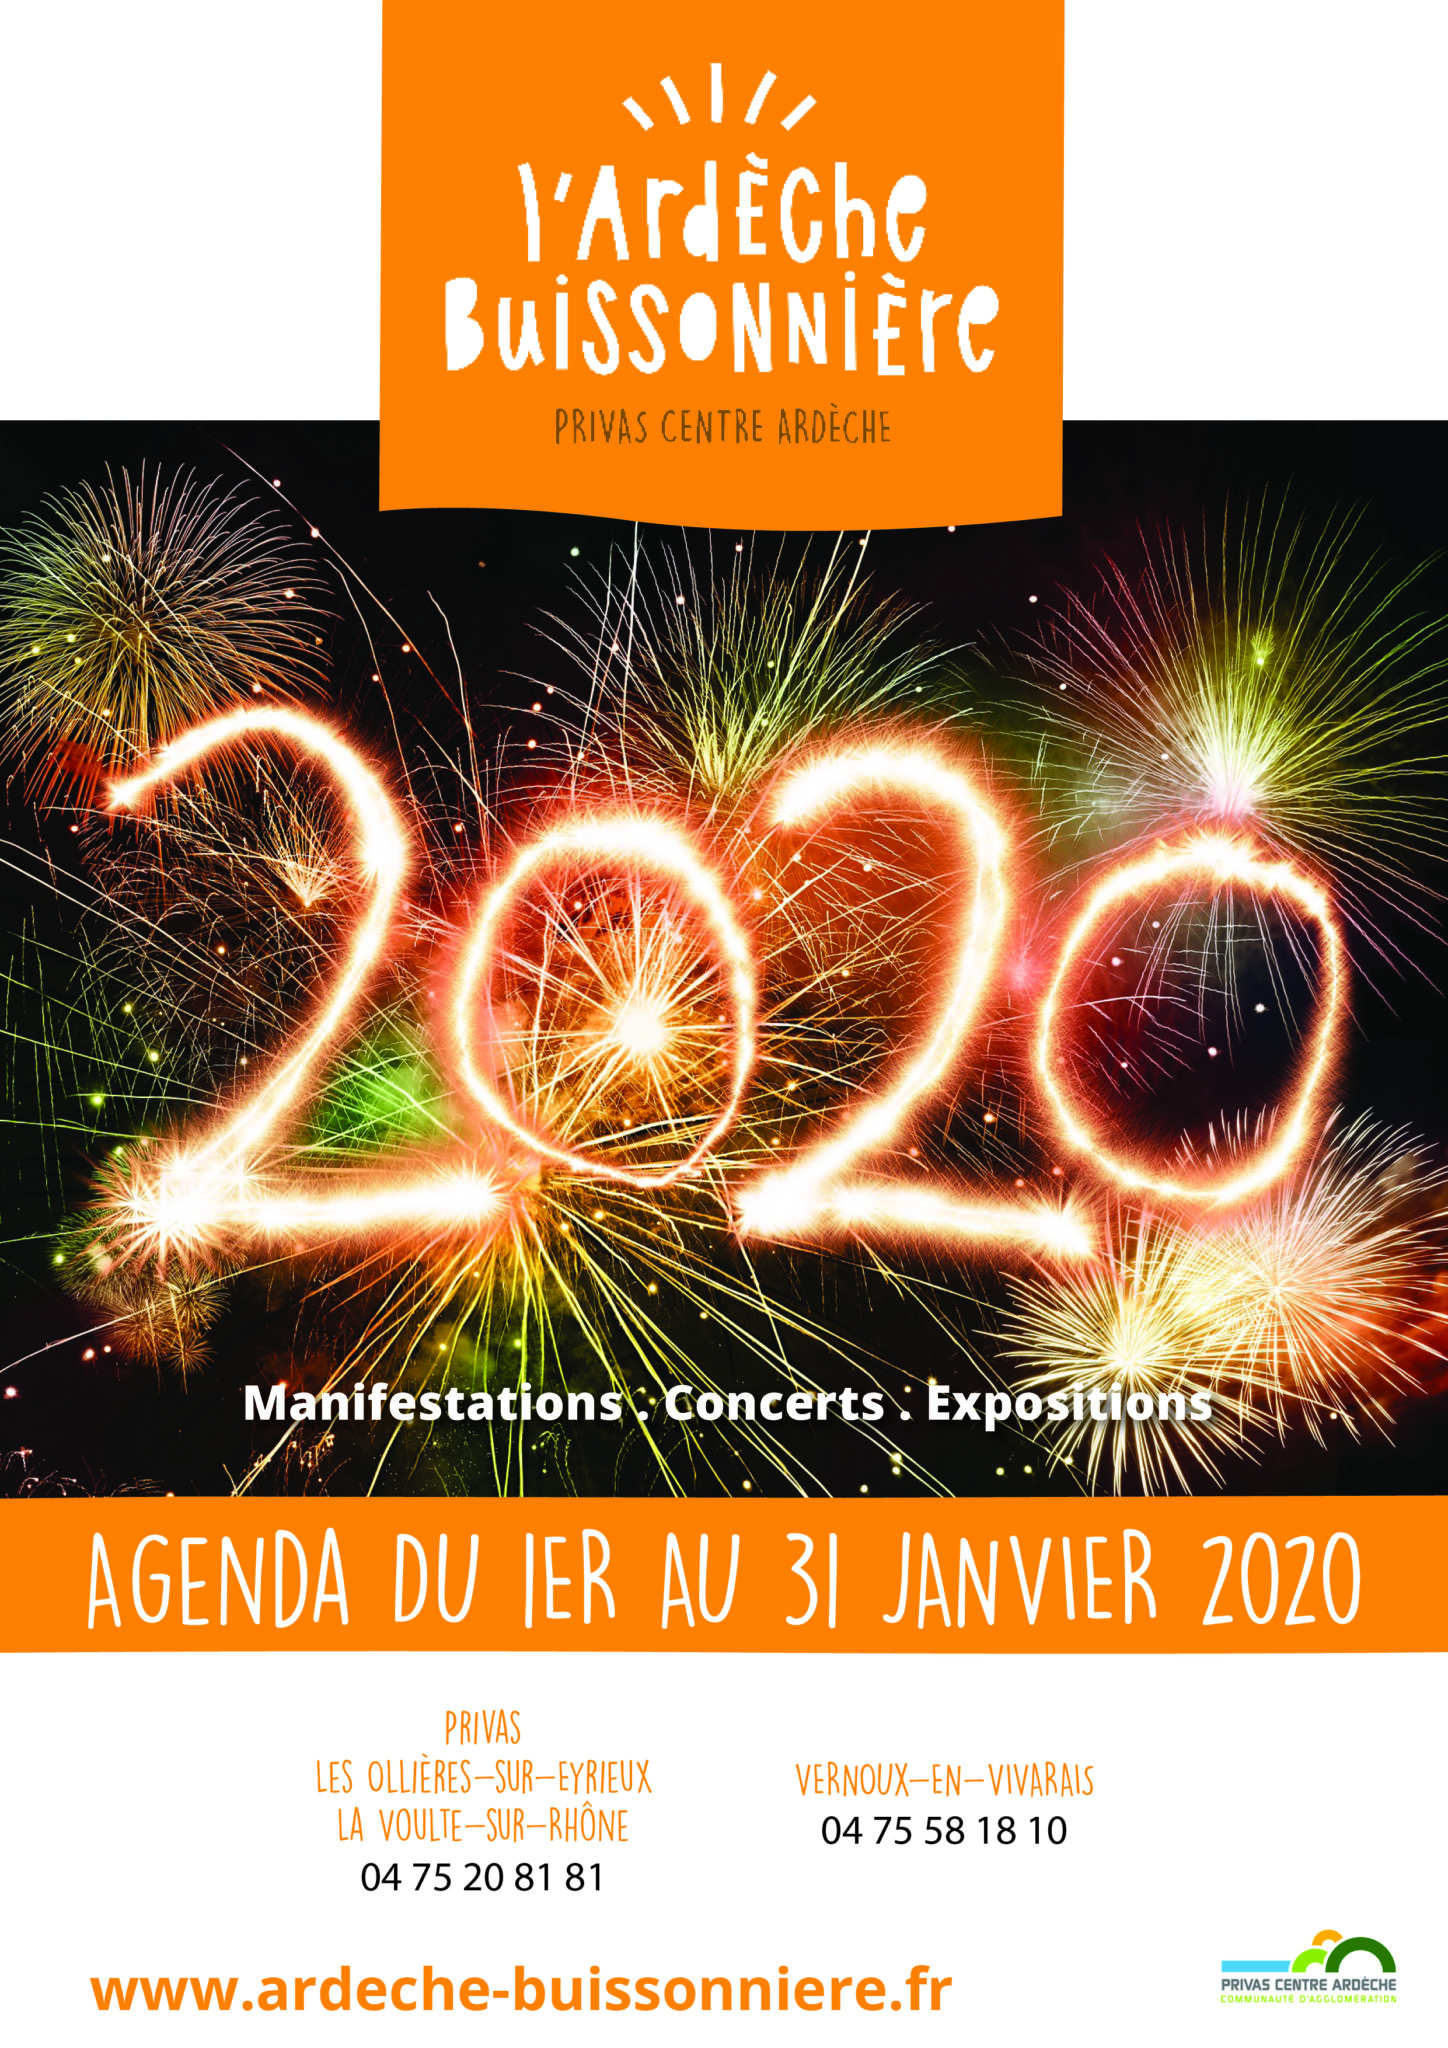 January 2020 events agenda - Ardèche Buissonnière